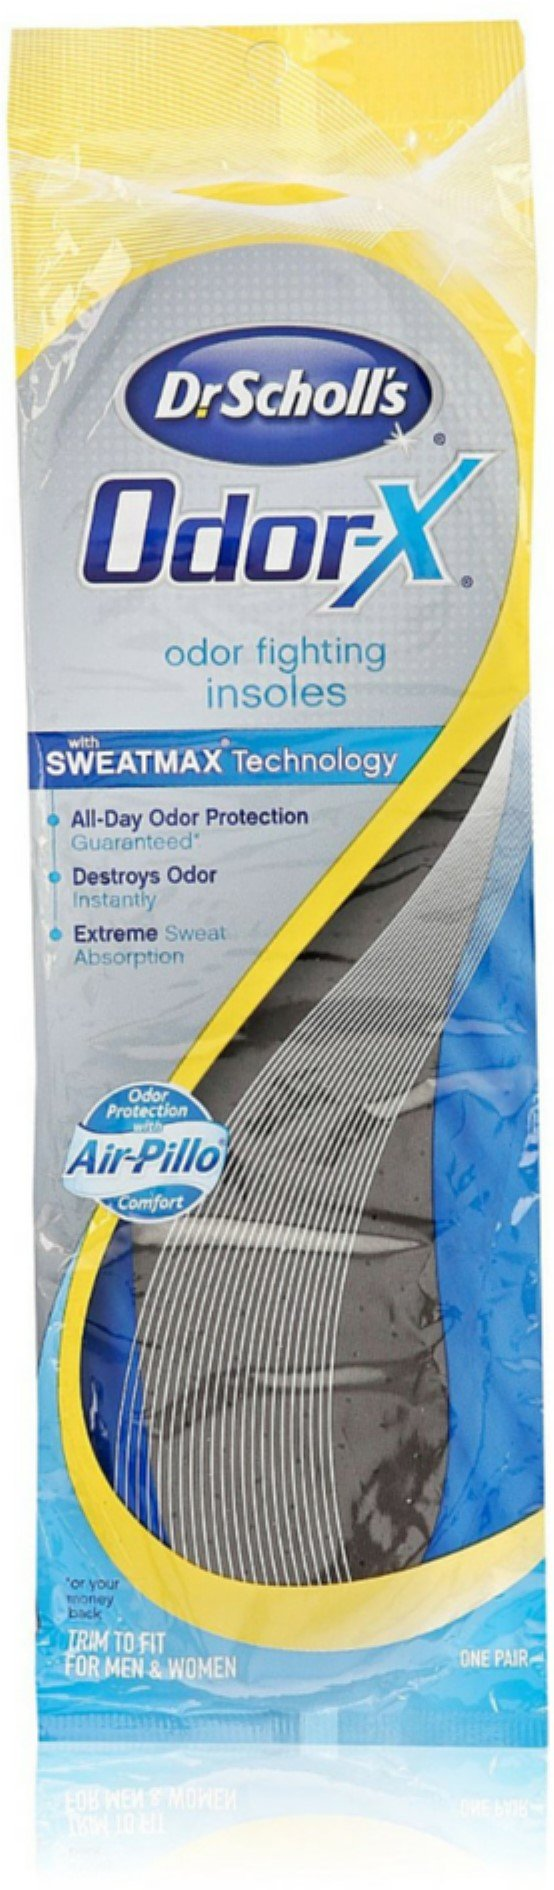 Dr. Scholl's Odor-X, Odor Fighting Insoles, Trim to Fit 1 pair (Pack of 5)